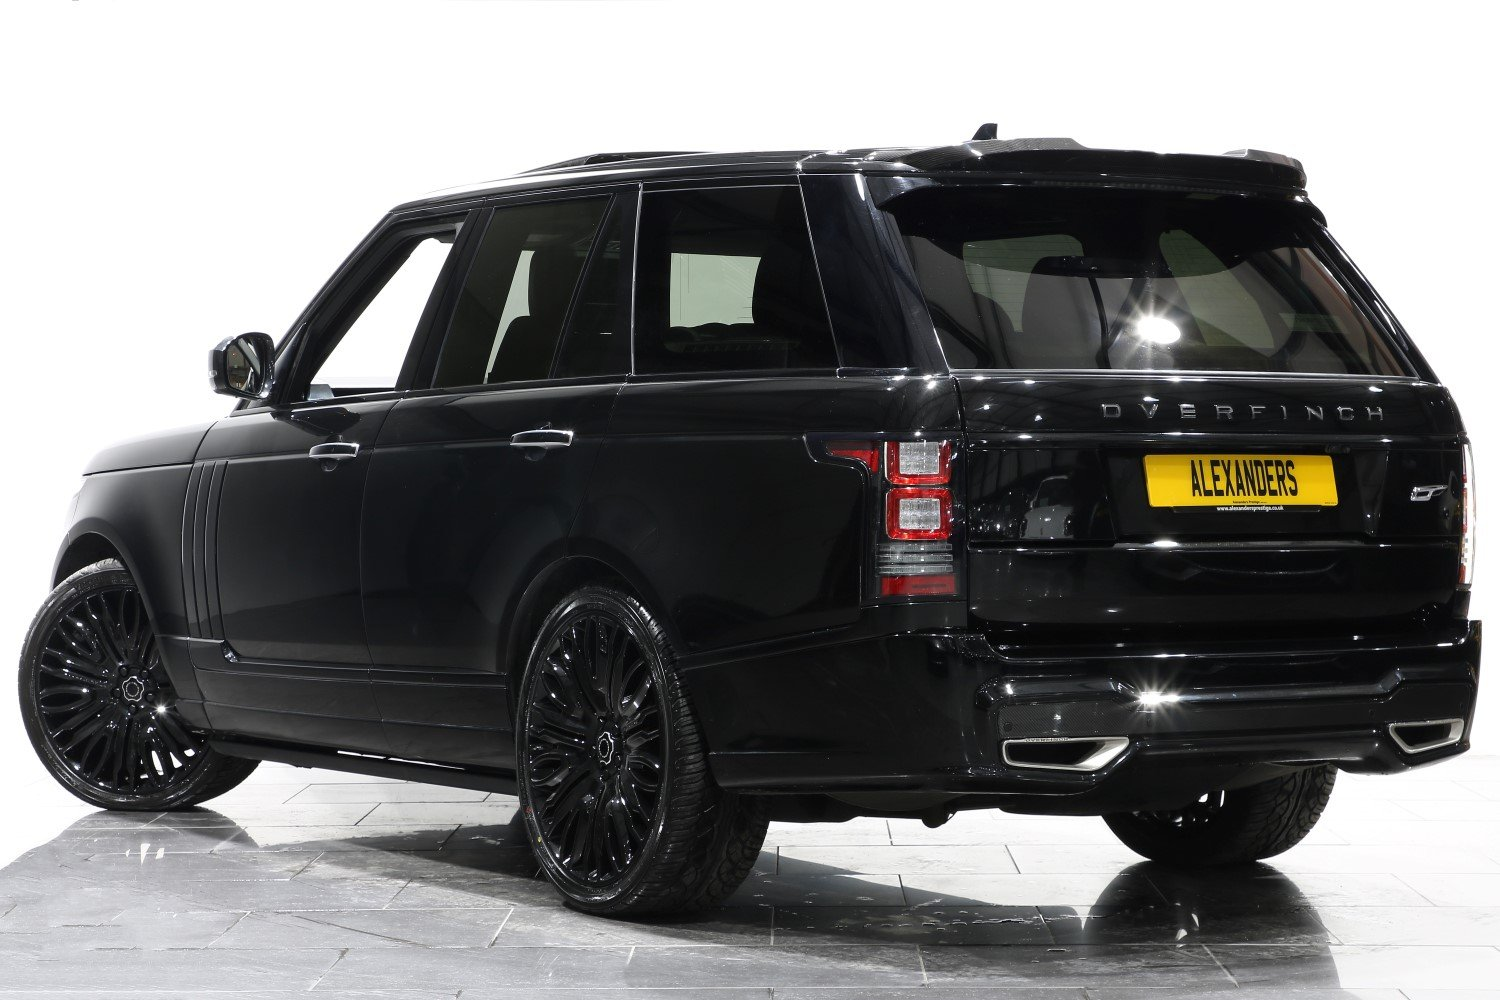 2016 66 RANGE ROVER 4.4 SDV8 AUTOBIOGRAPHY OVERFINCH AUTO For Sale (picture 3 of 6)